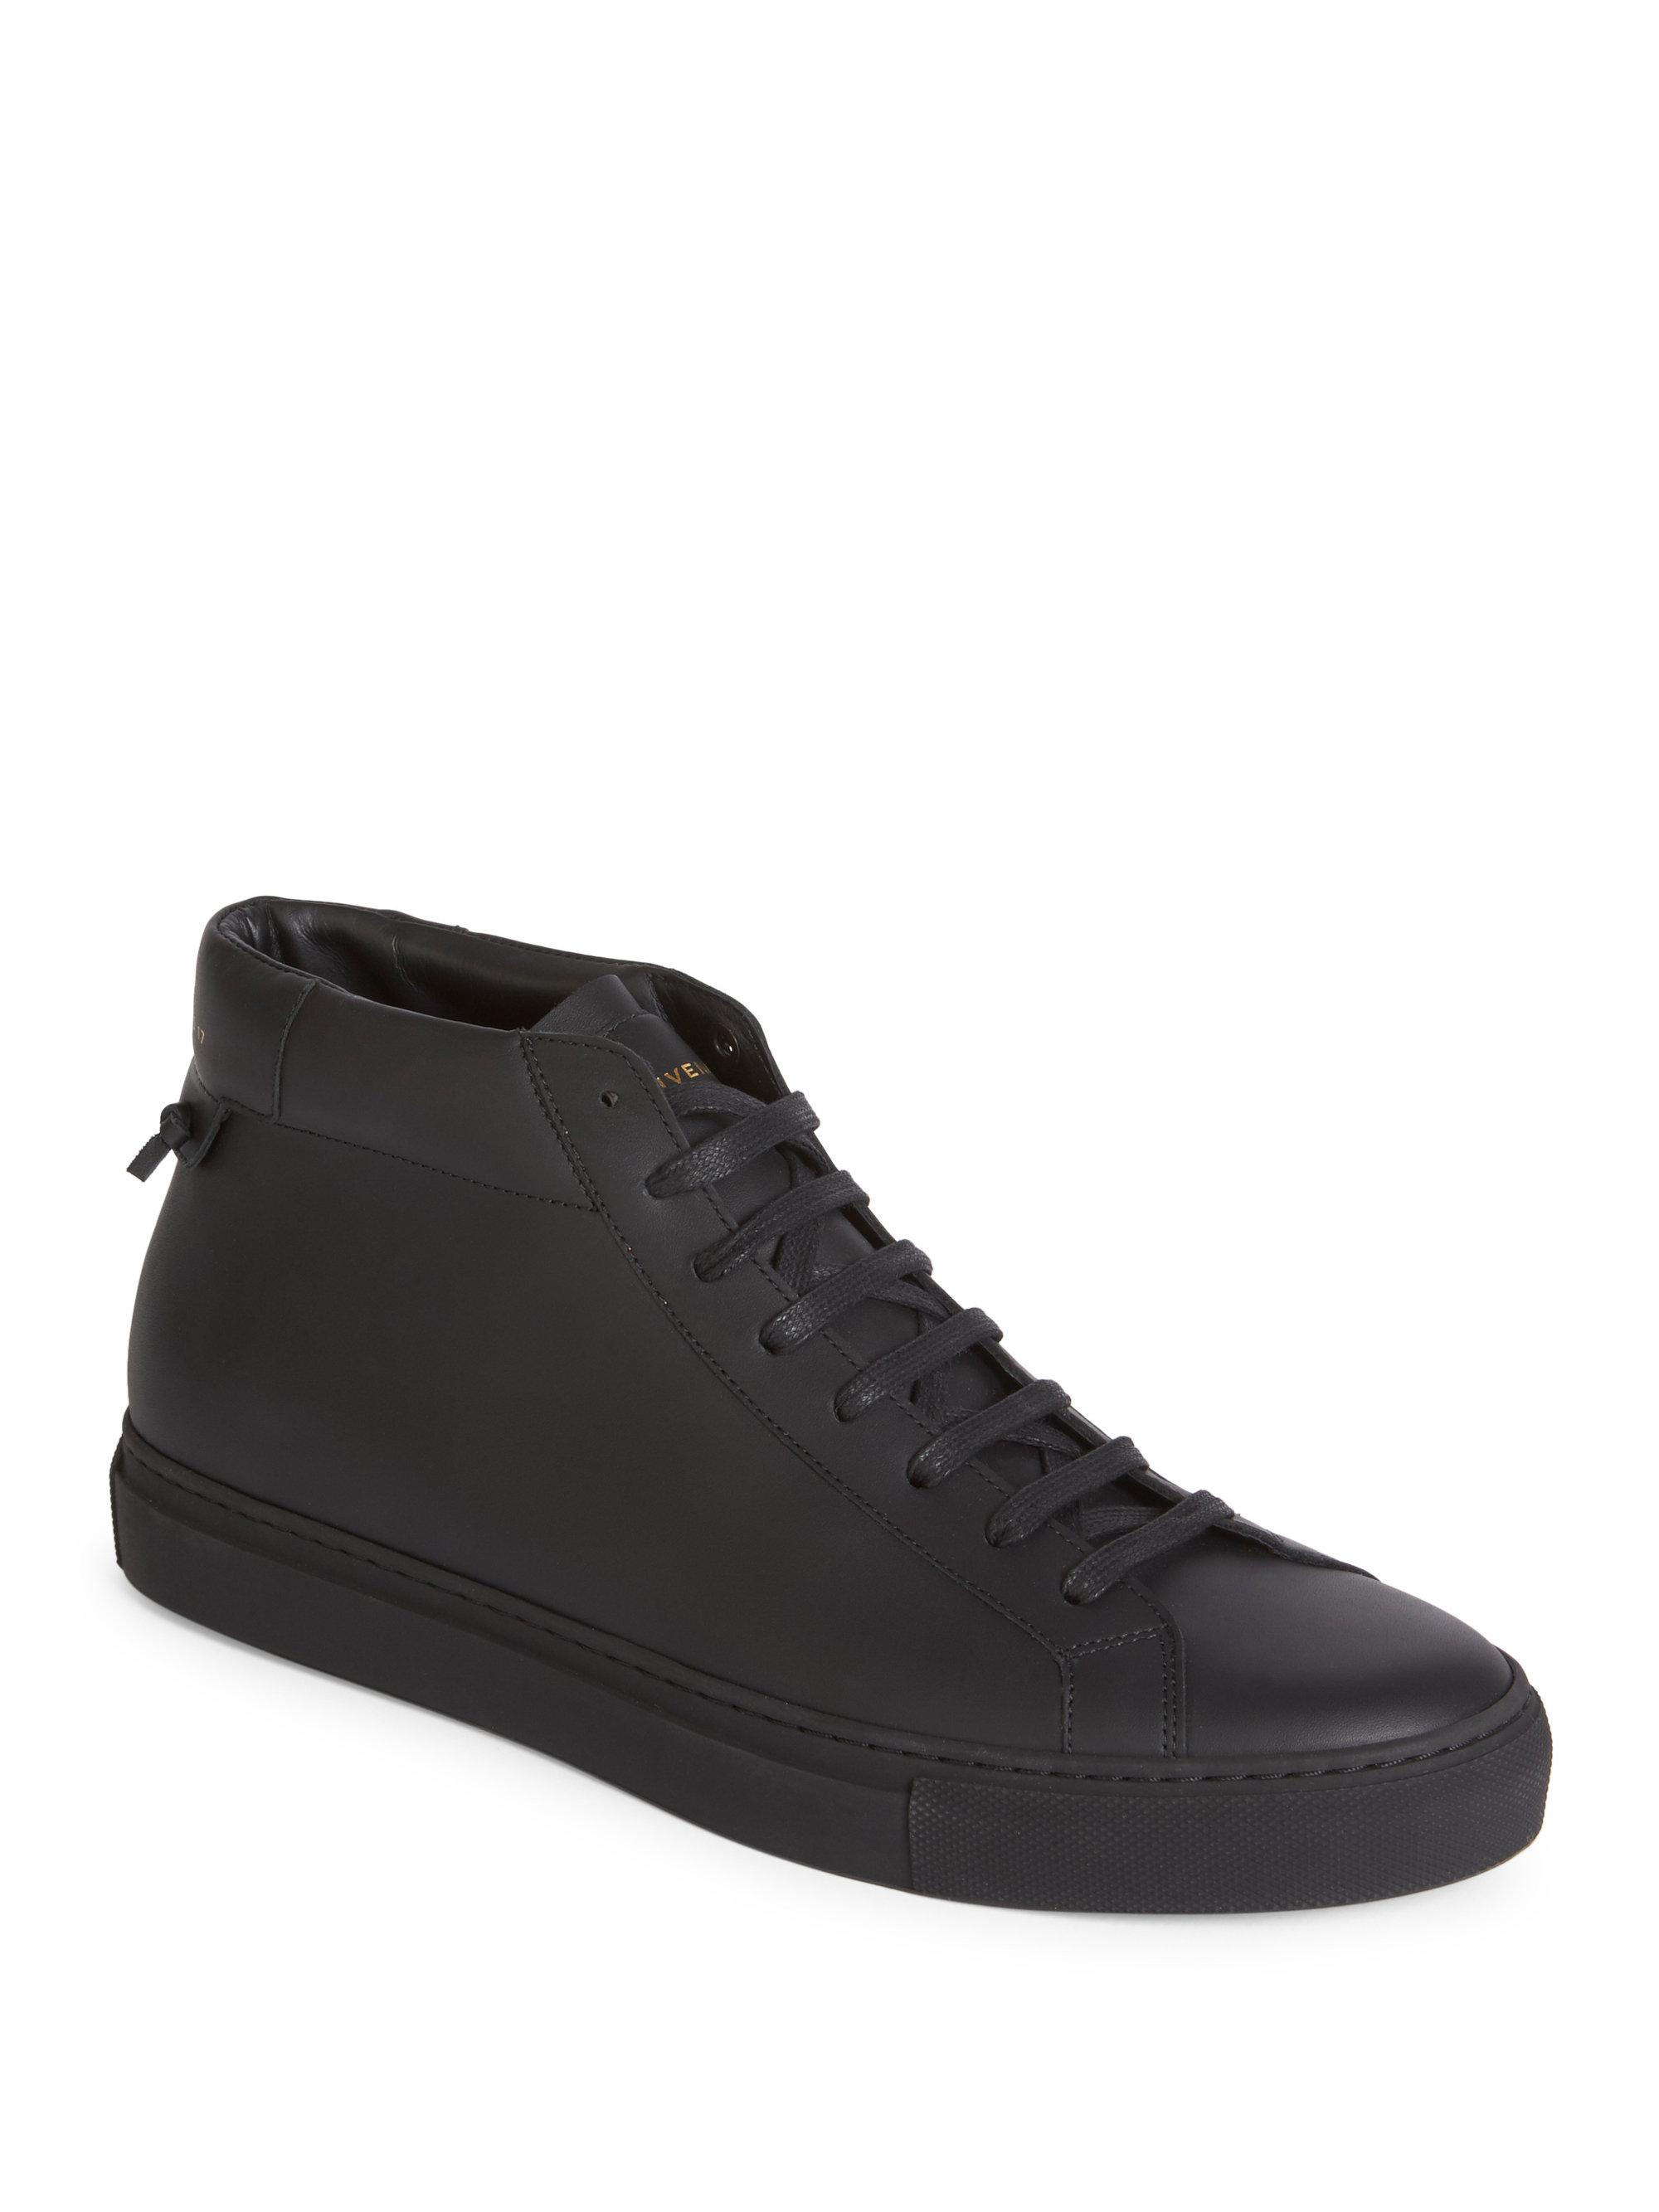 Lyst Givenchy Urban Street Leather Mid Top Sneakers In